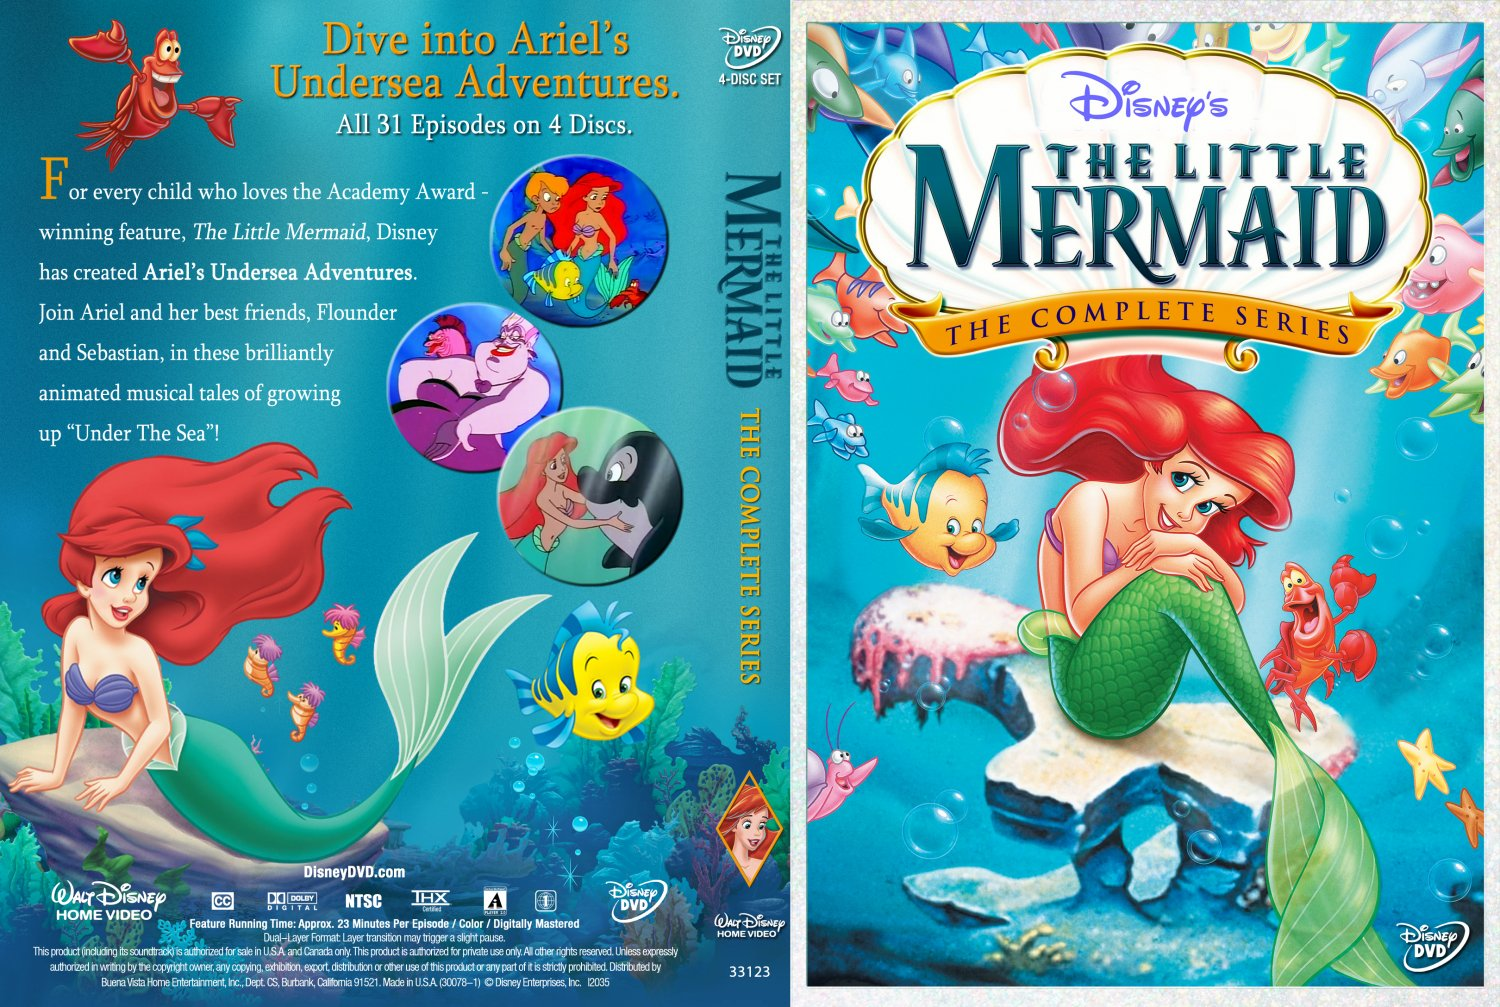 The Little Mermaid - The Complete Series - TV DVD Custom ...